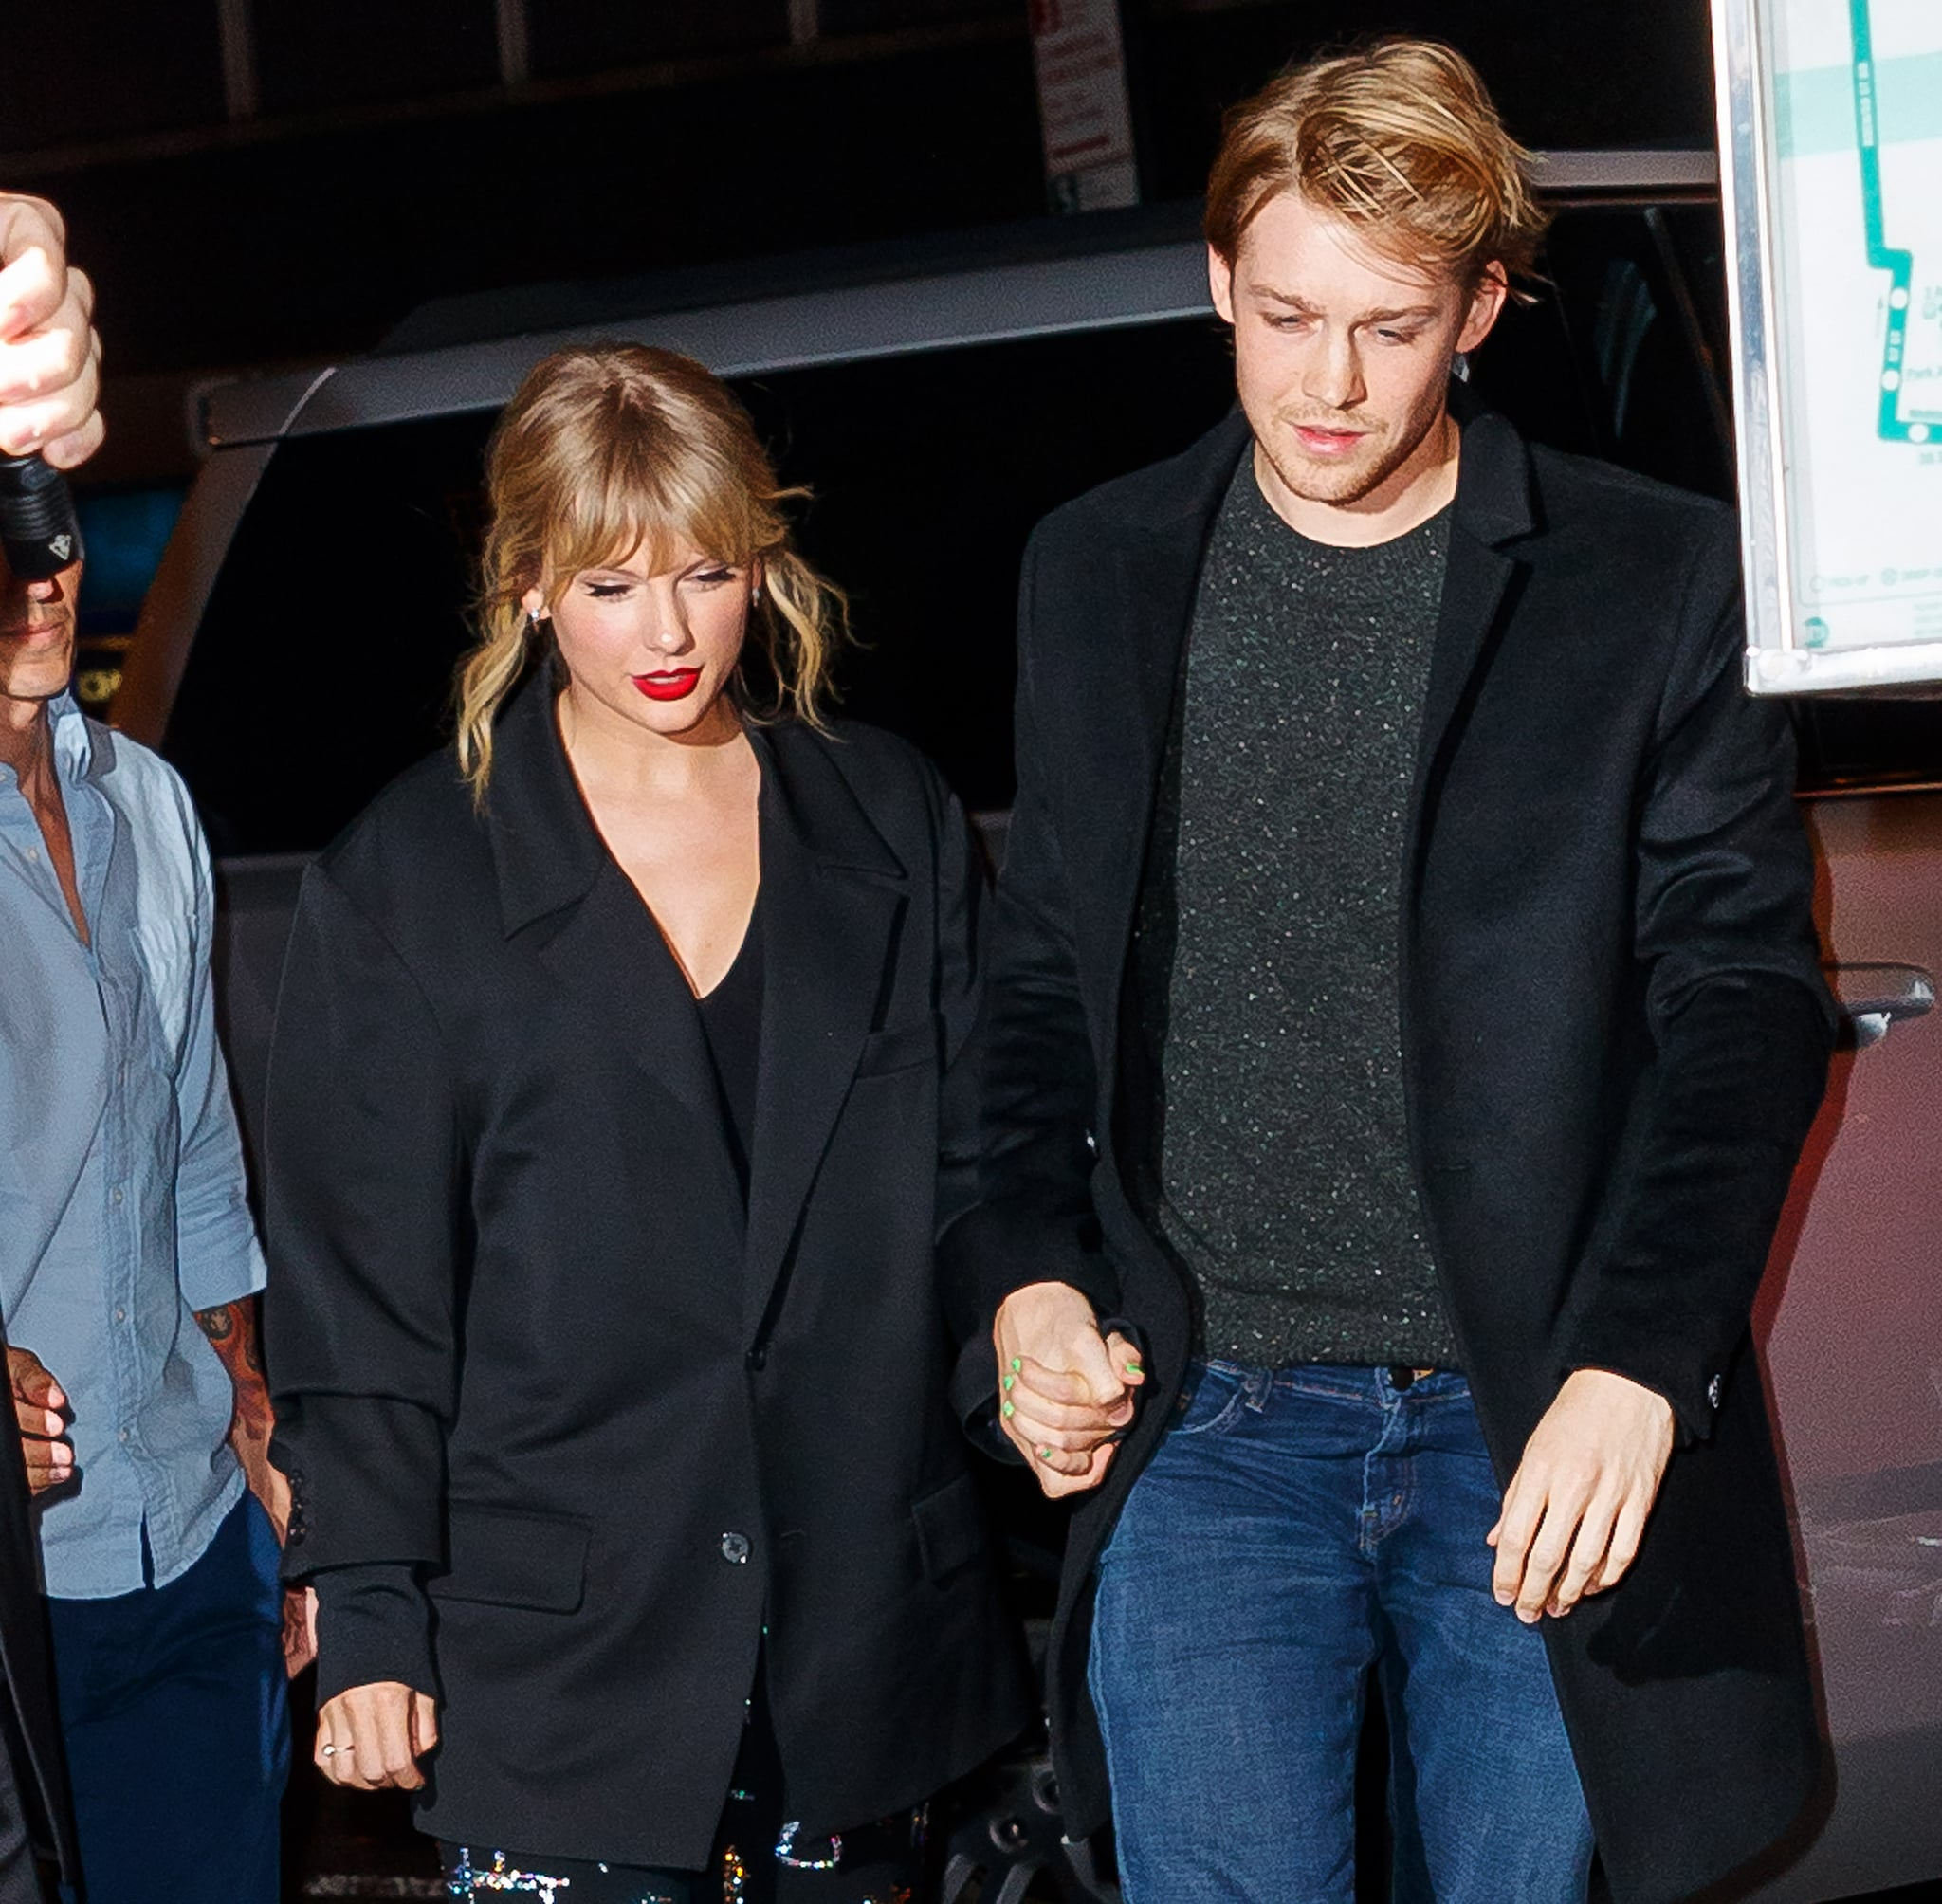 NEW YORK, NEW YORK - OCTOBER 06: Taylor Swift and Joe Alwyn arrive at Zuma on October 06, 2019 in New York City. (Photo by Jackson Lee/GC Images)